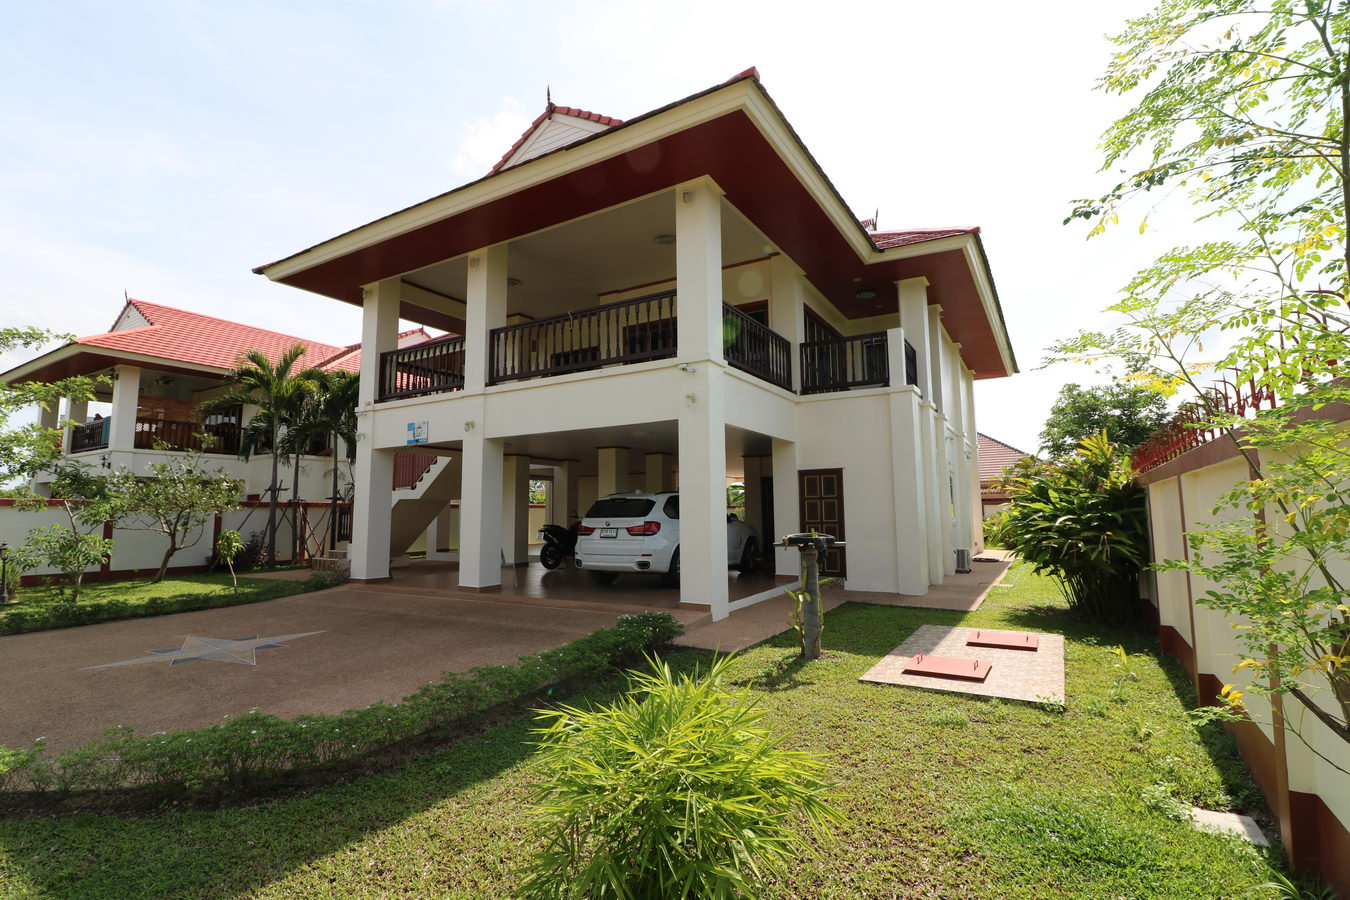 Huge 4 bed 3 bath 2 storey home for sale in ban lueam for 2 storey house for sale